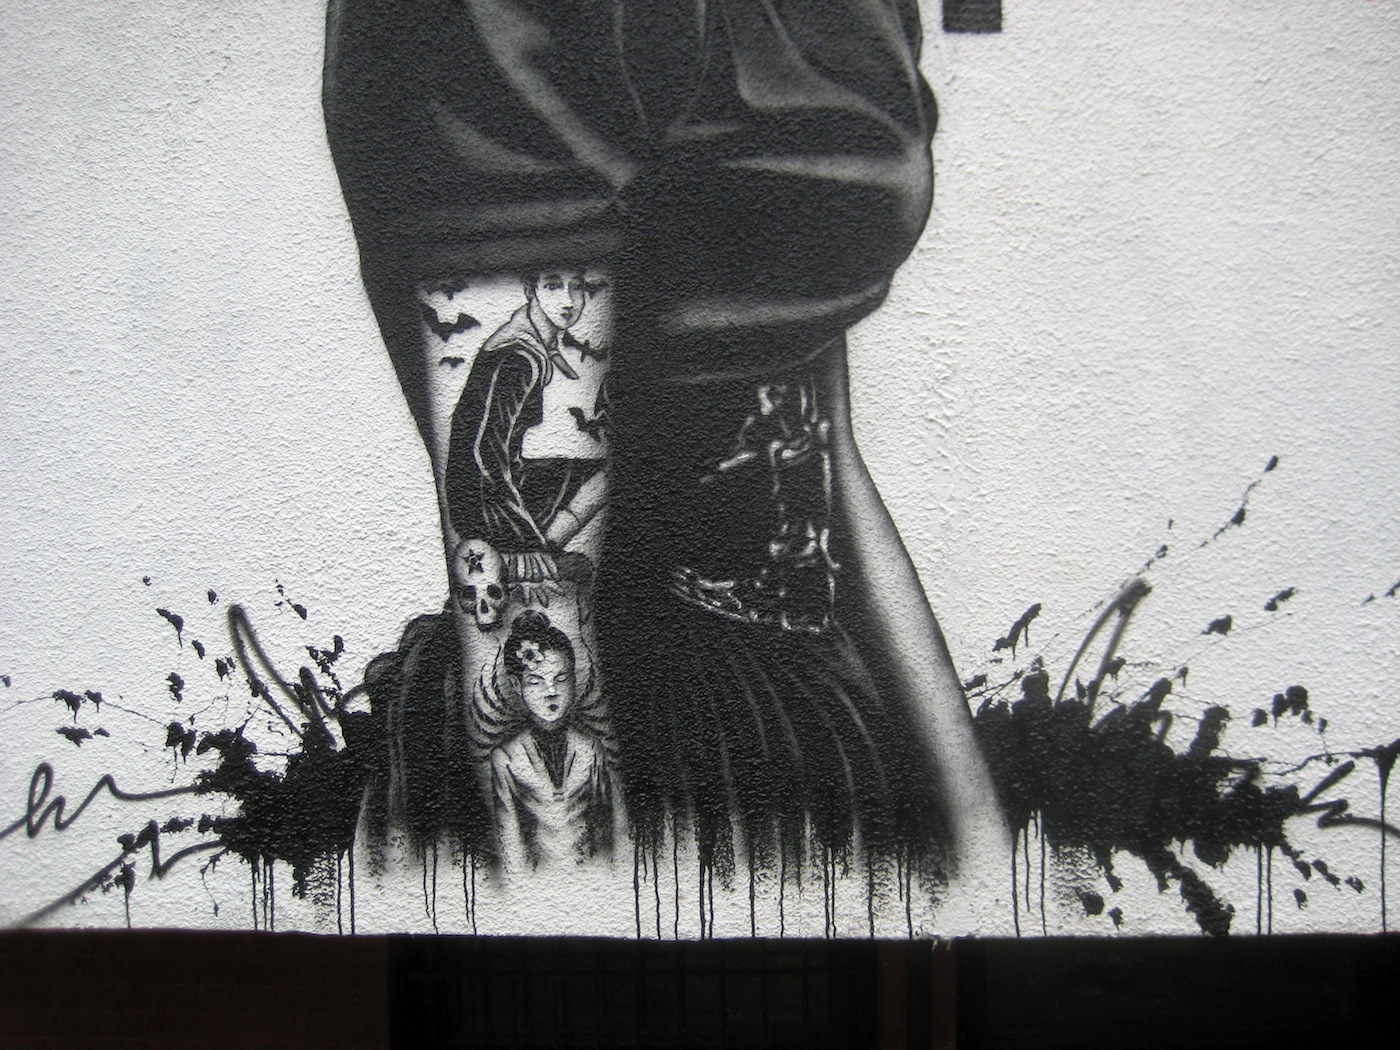 By Fin Dac – In Warsaw, Poland